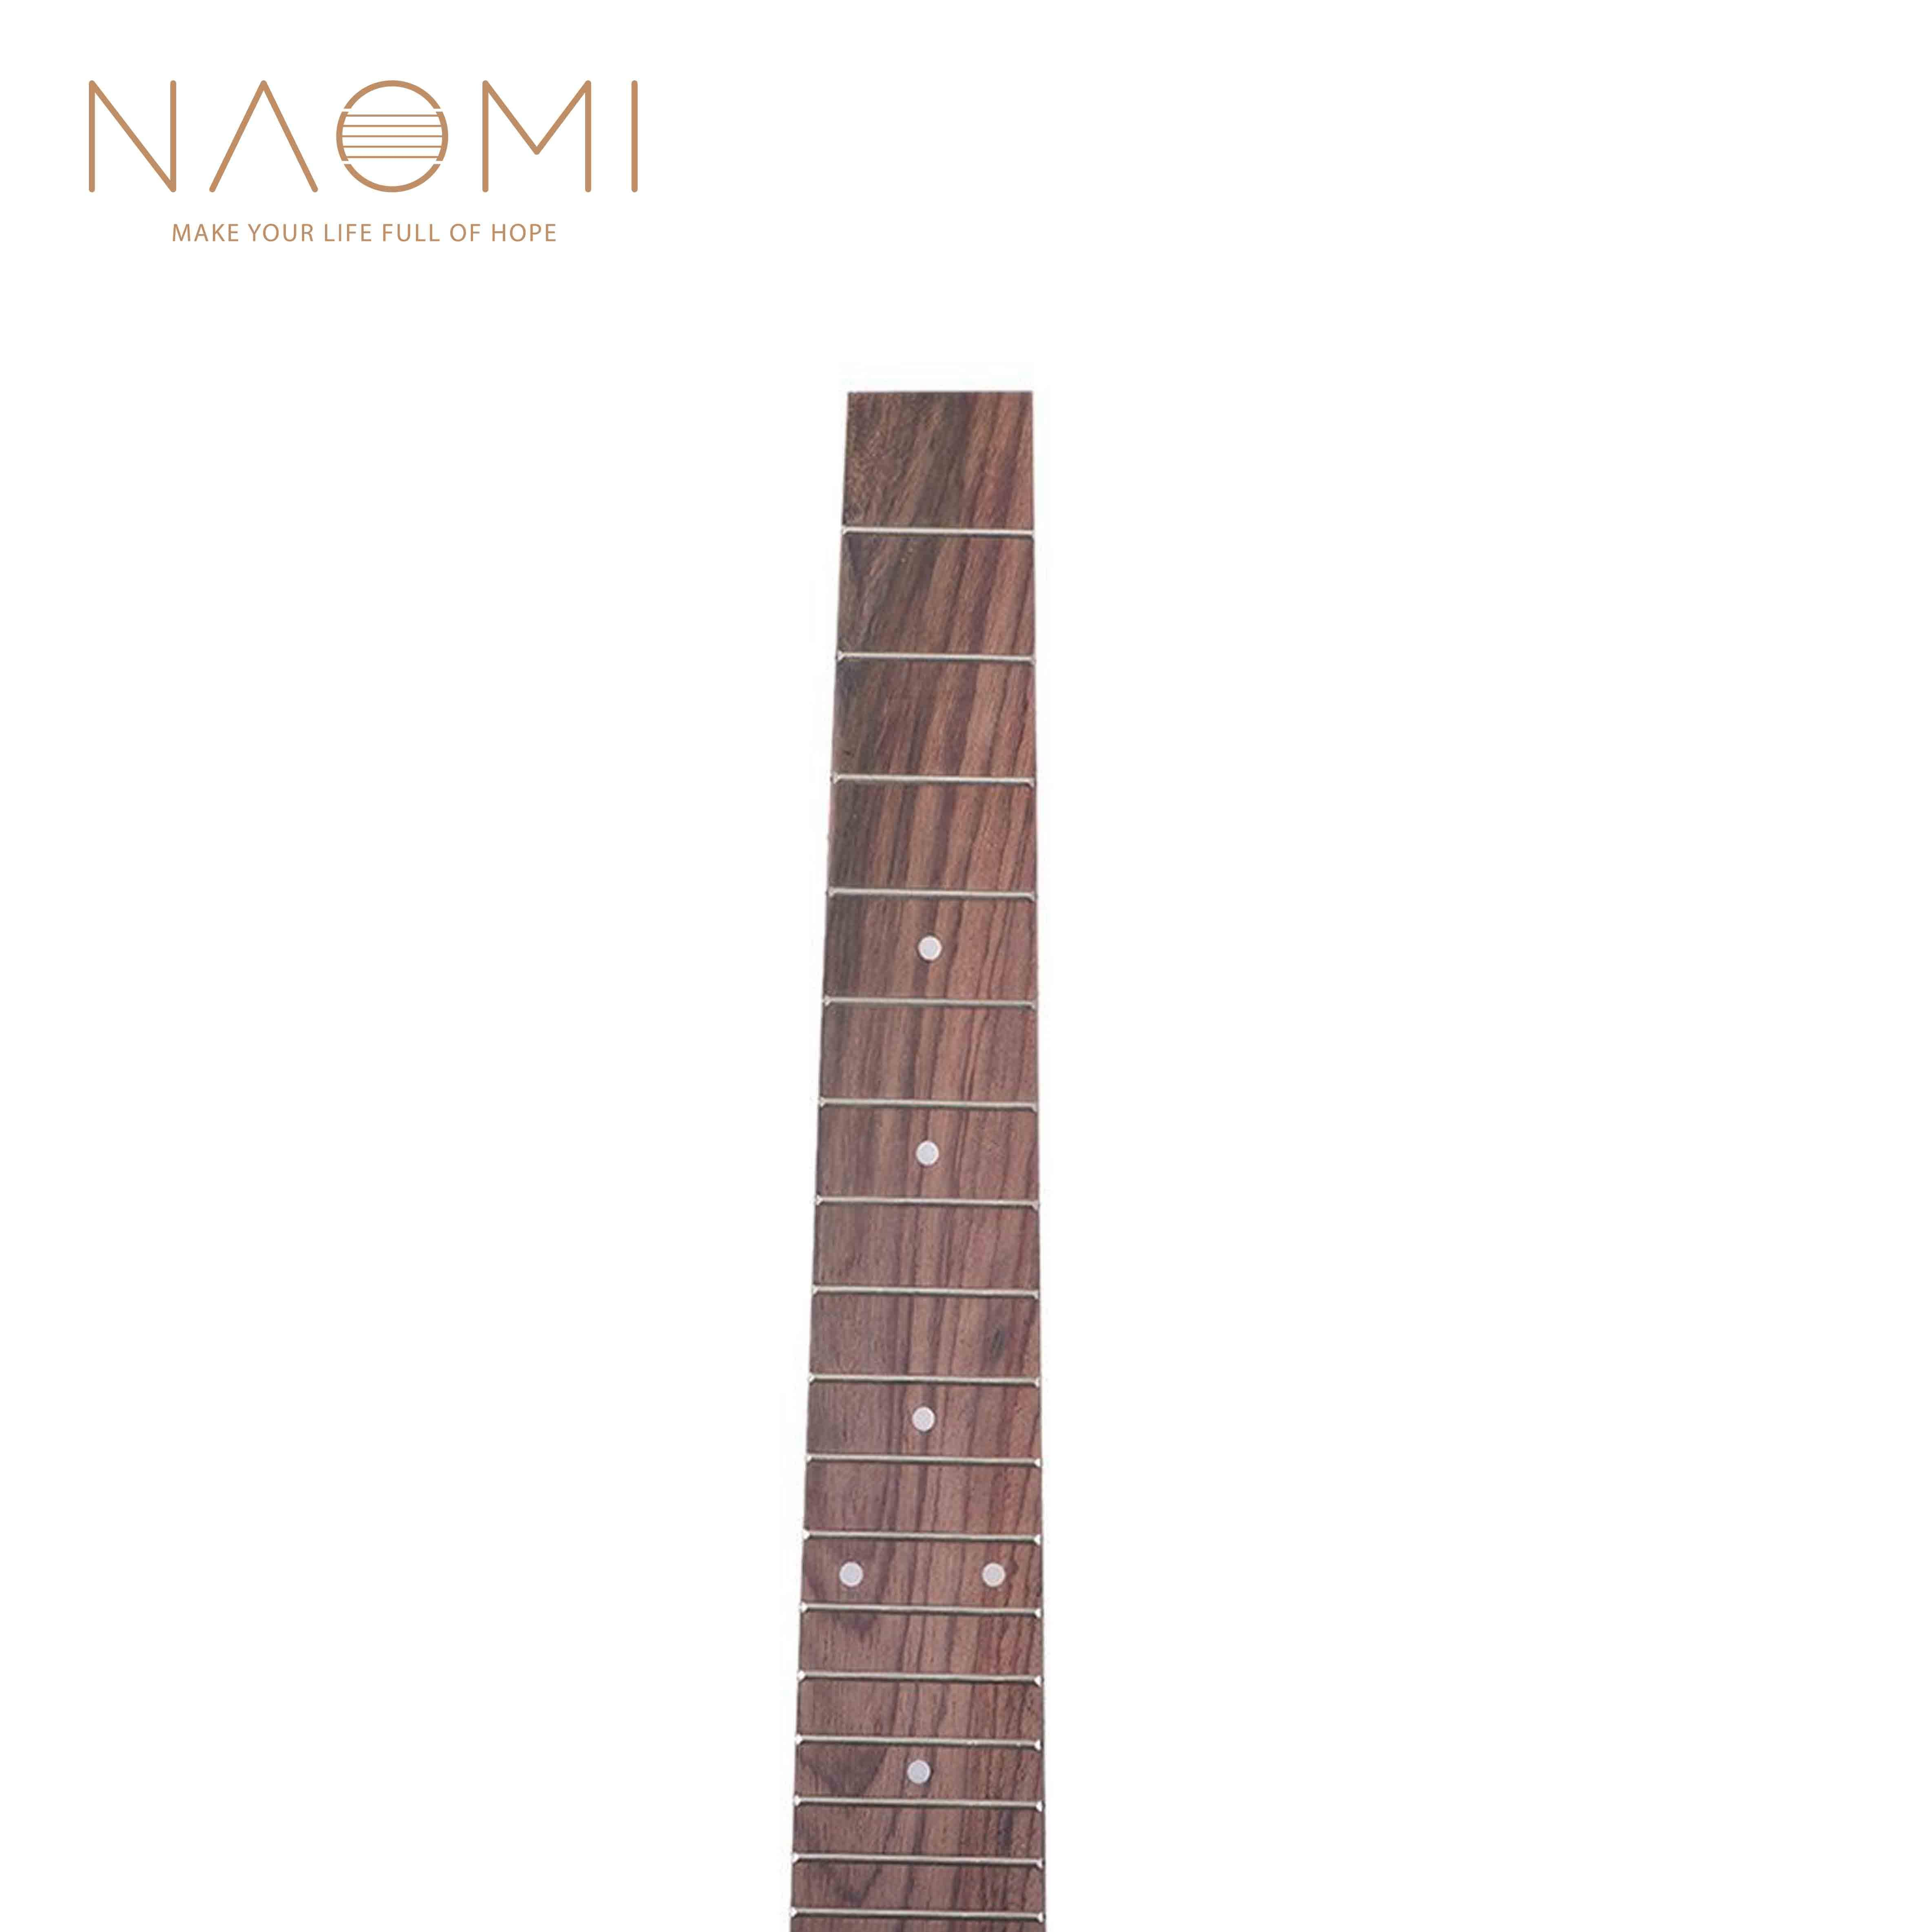 Stringed Instruments Musical Instruments New Fashion 23 Inch Concert Ukulele Fretboard 18 Frets Rosewood Fingerboard Fretboard For Ukulele Hawaii Guitar Accessories Reasonable Price